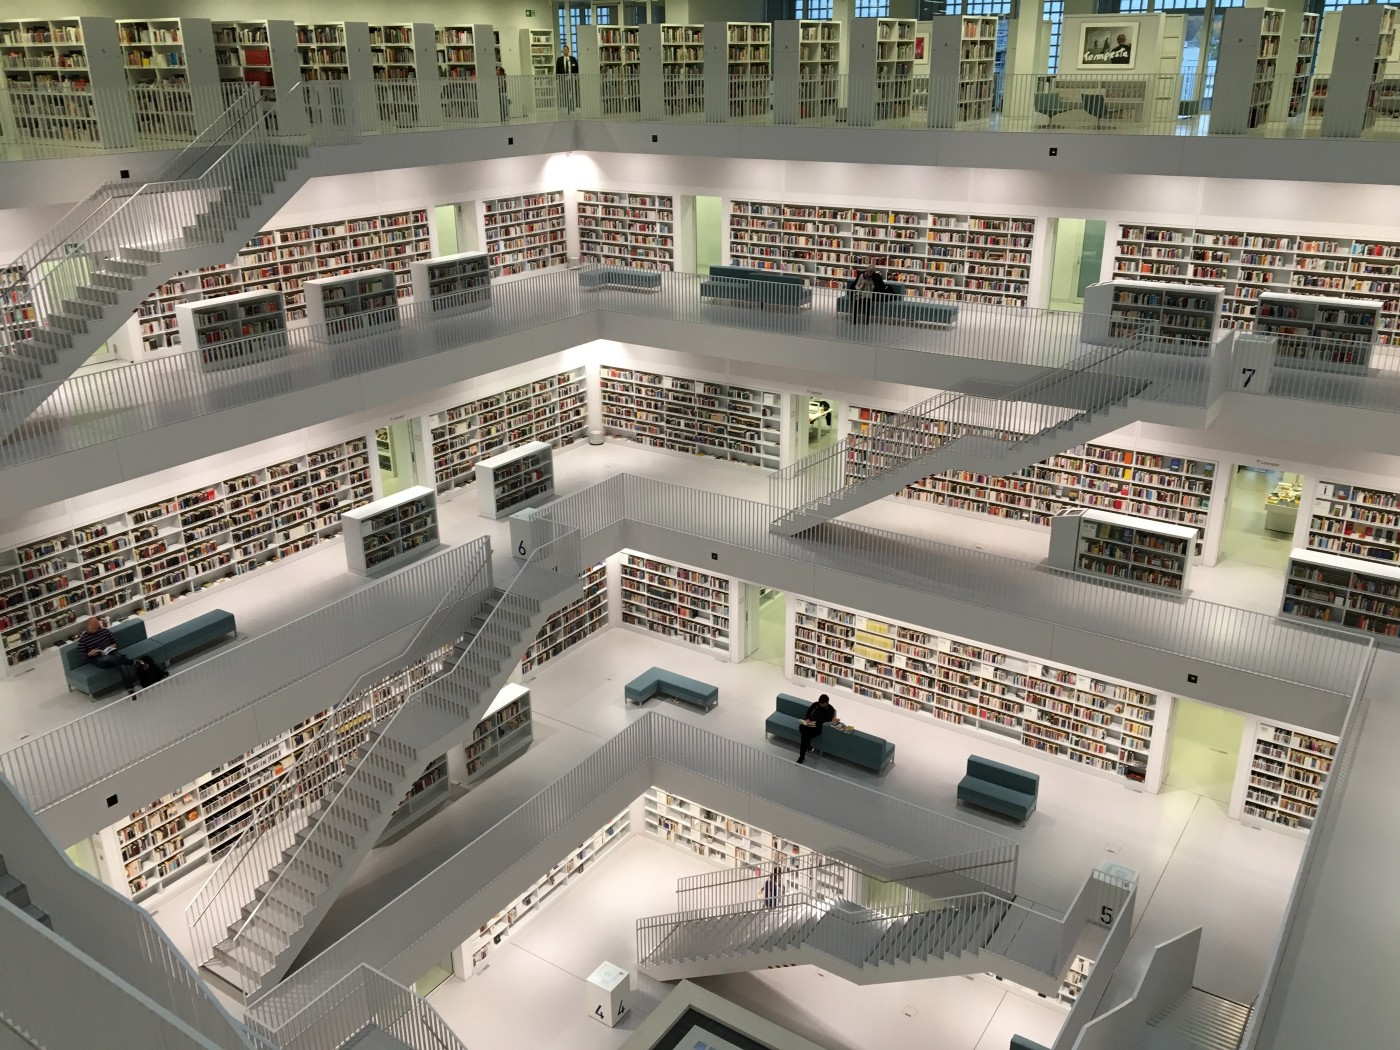 large library of books